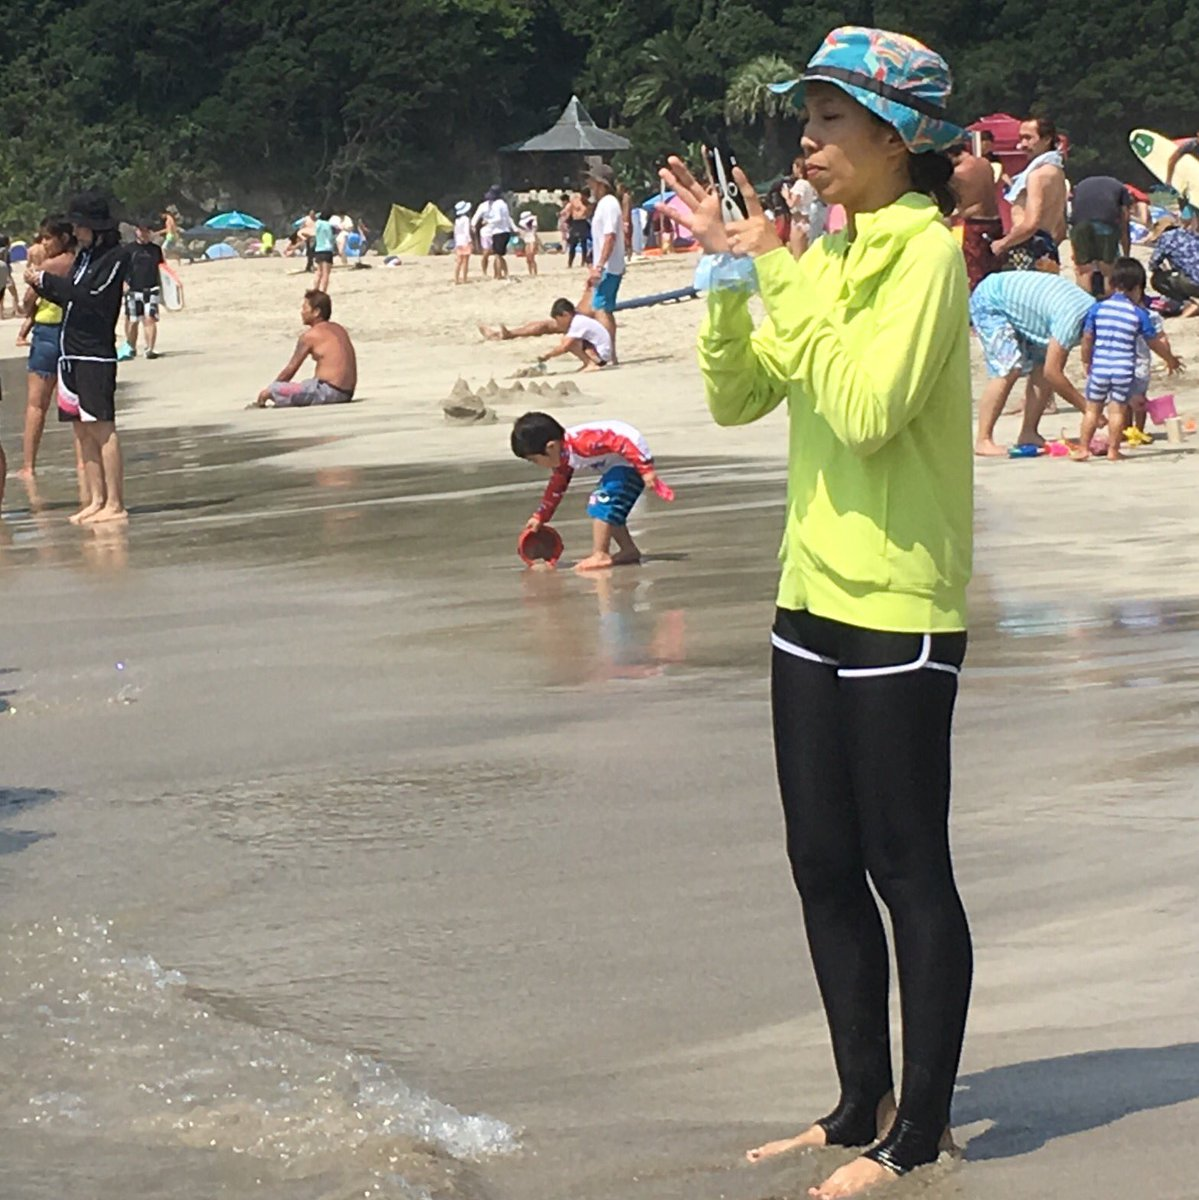 This is what lots of Japanese women wear to the beach. Hope none of them want to go on vacation to France.